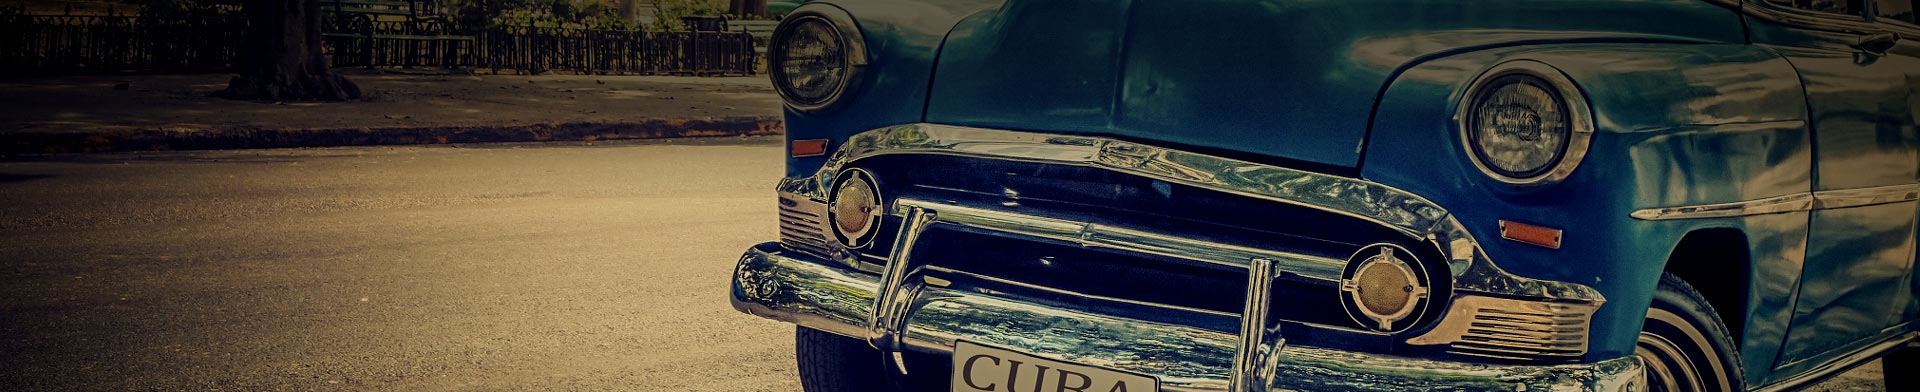 » Offer - Havana Taxi